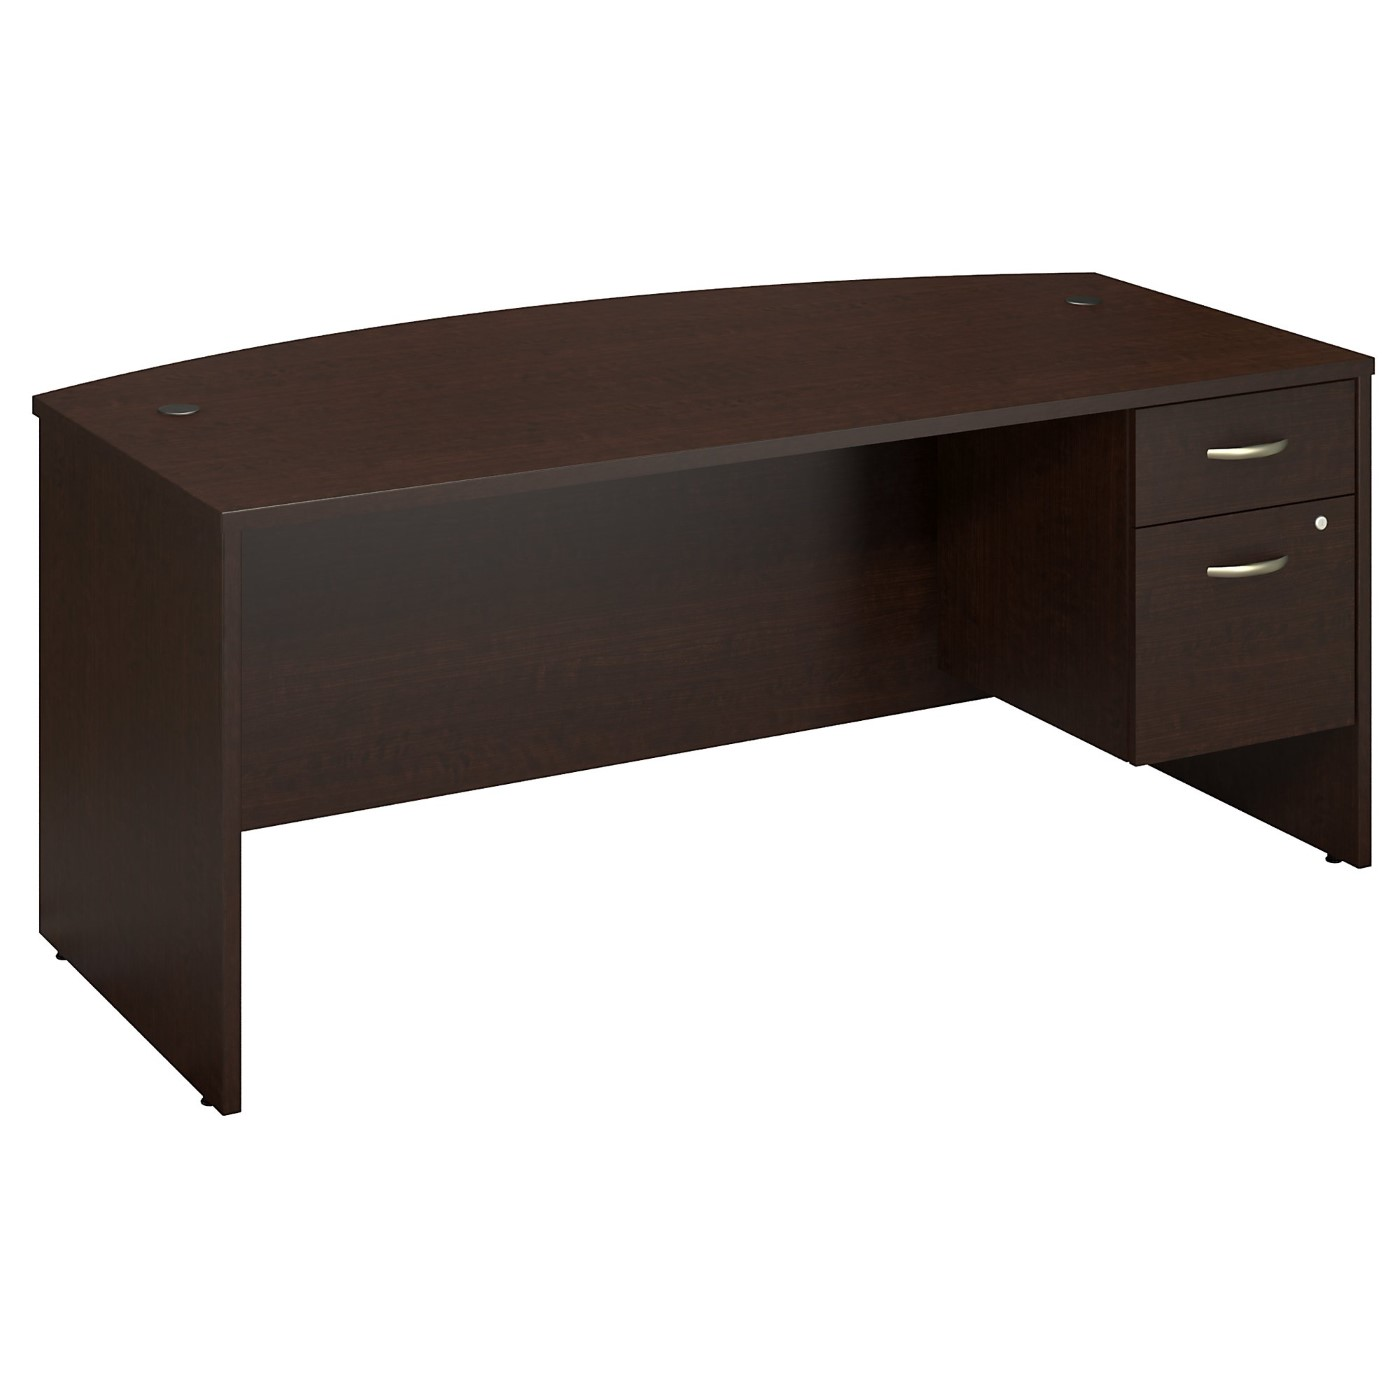 BUSH BUSINESS FURNITURE SERIES C 72W X 36D BOW FRONT DESK WITH 3/4 PEDESTAL. FREE SHIPPING